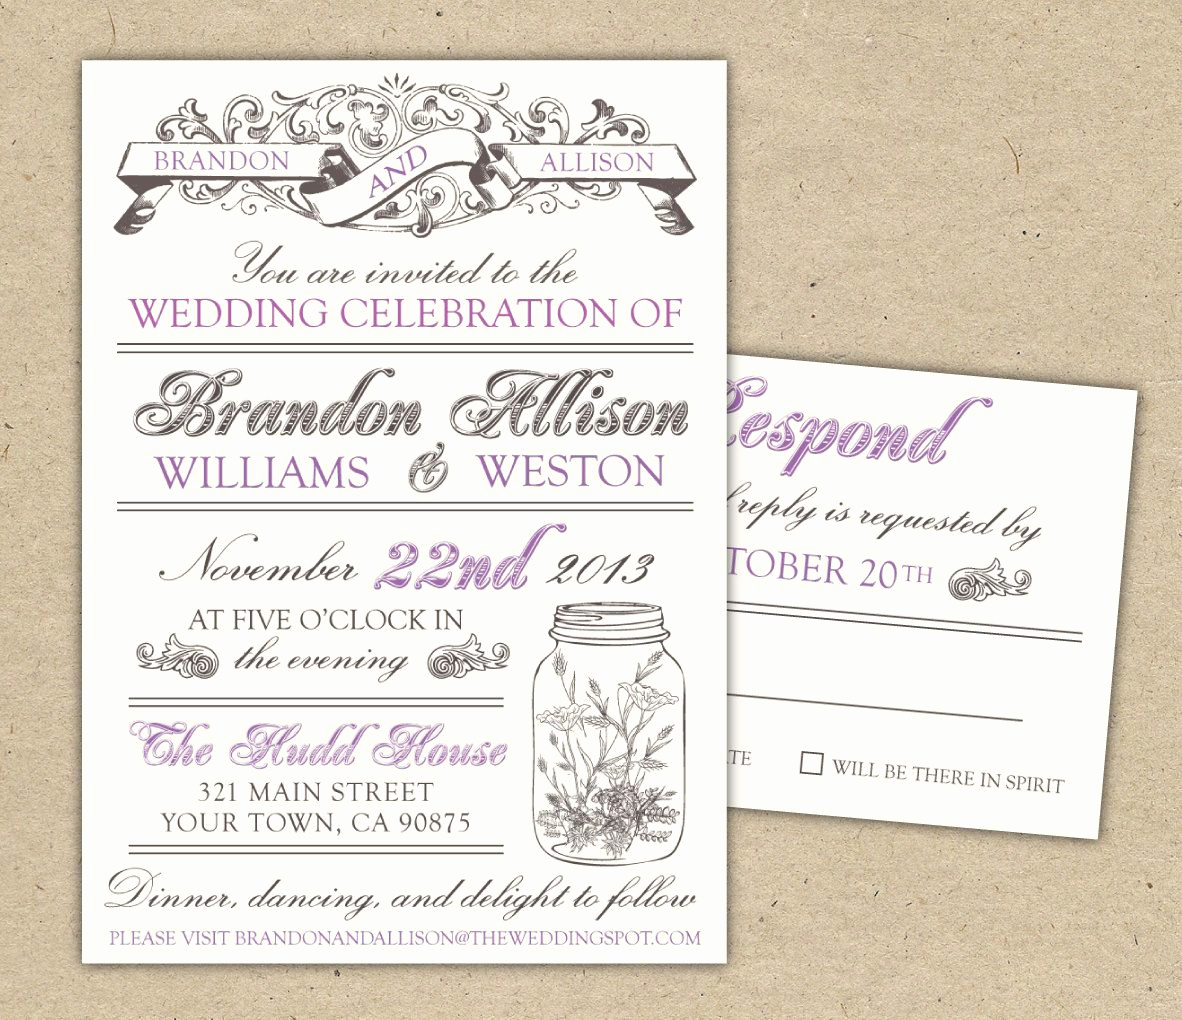 Free Wedding Invitation Templates Lovely Free Templates for Invitations